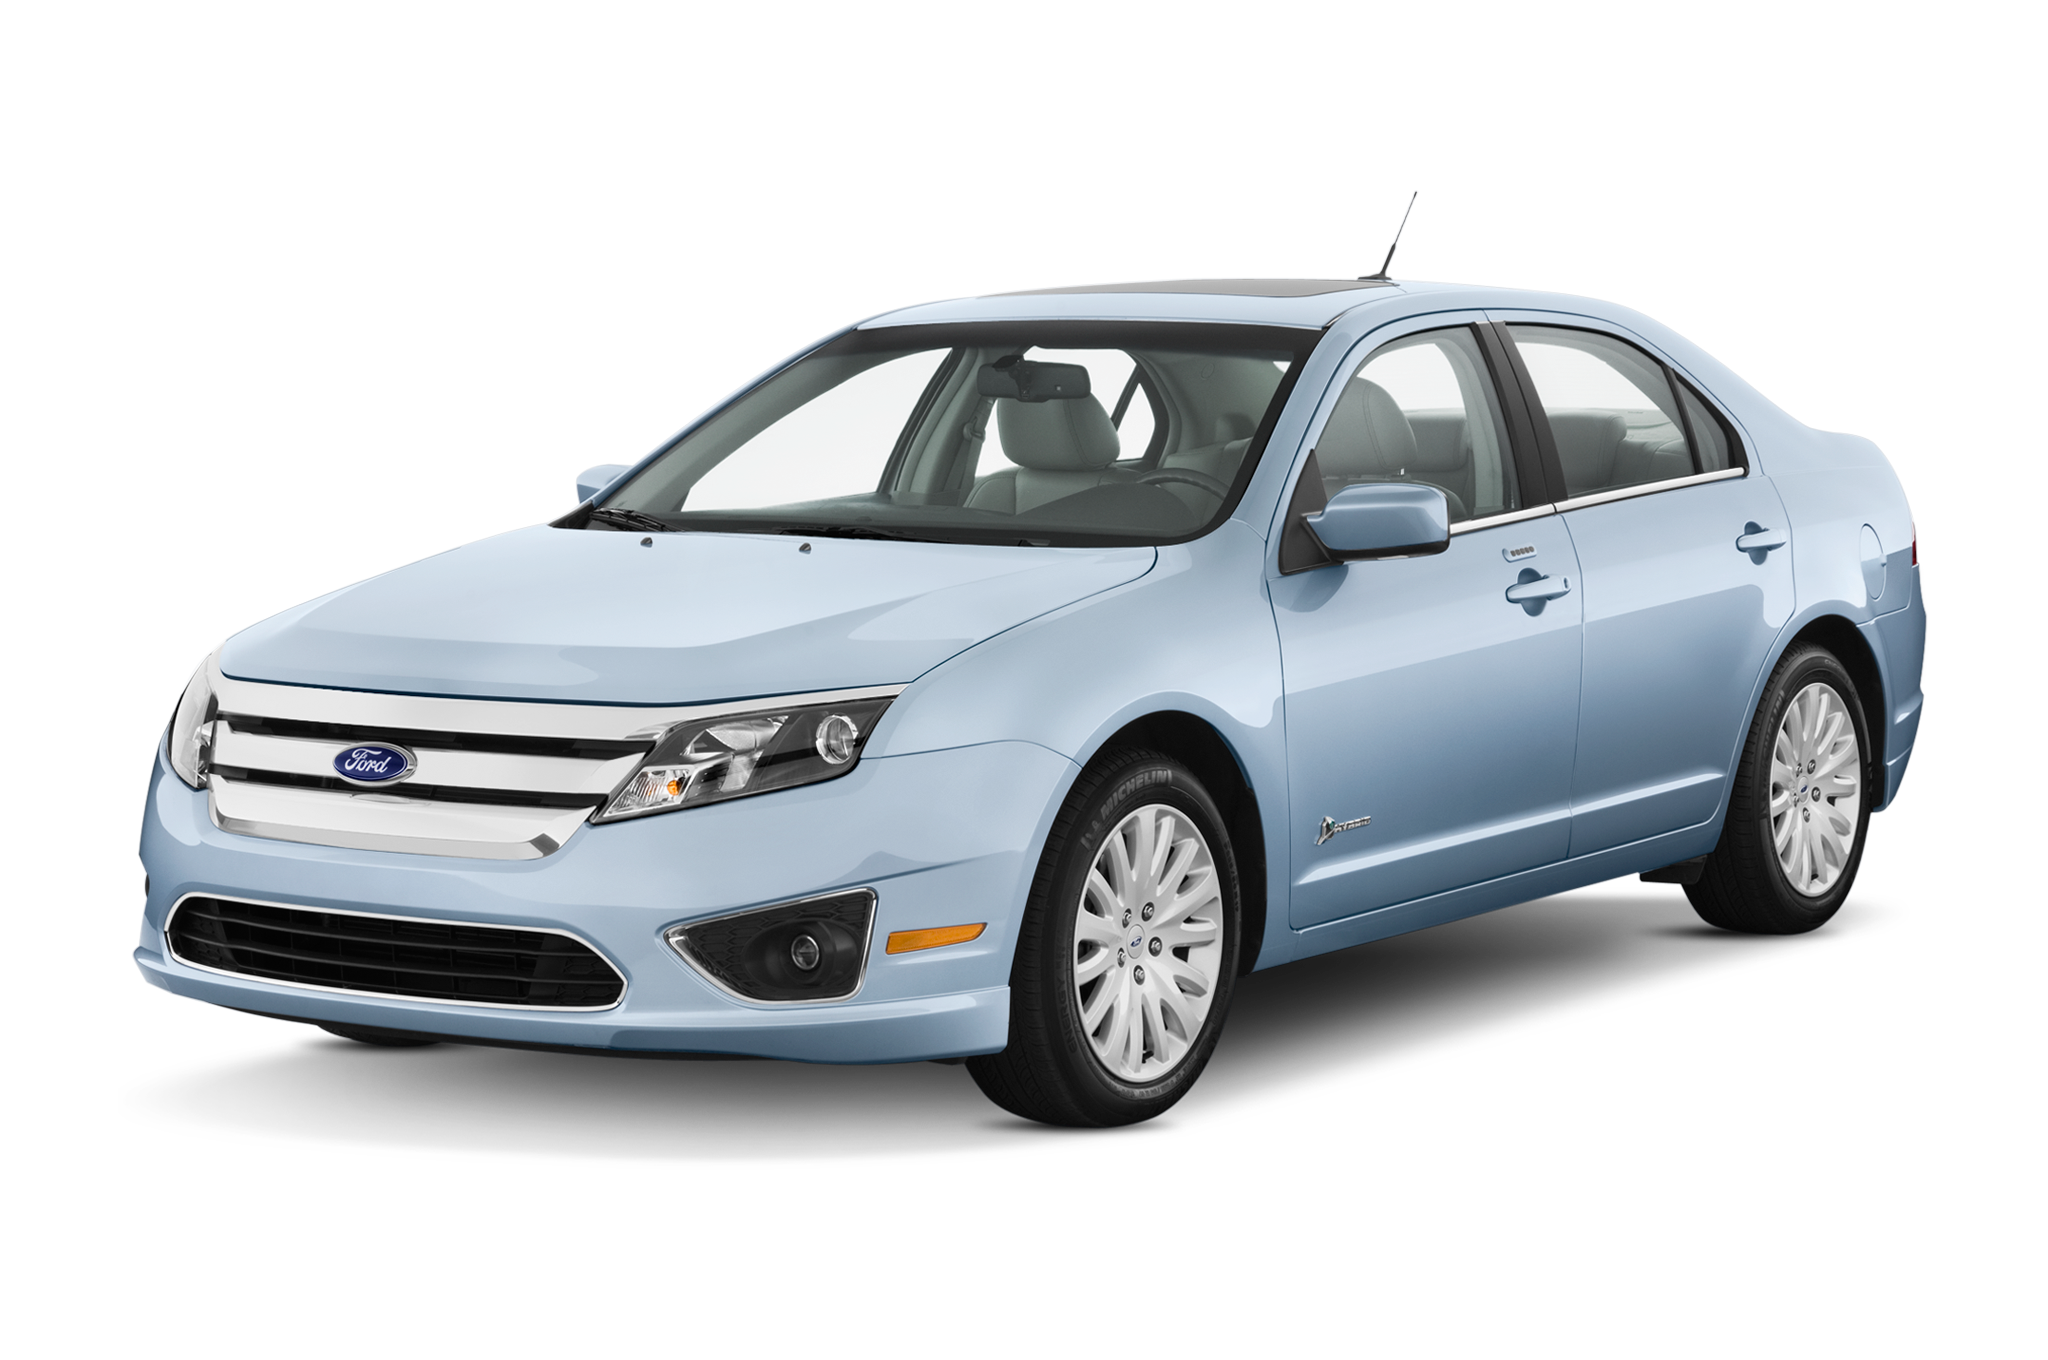 2012 Ford Fusion Reviews and Rating